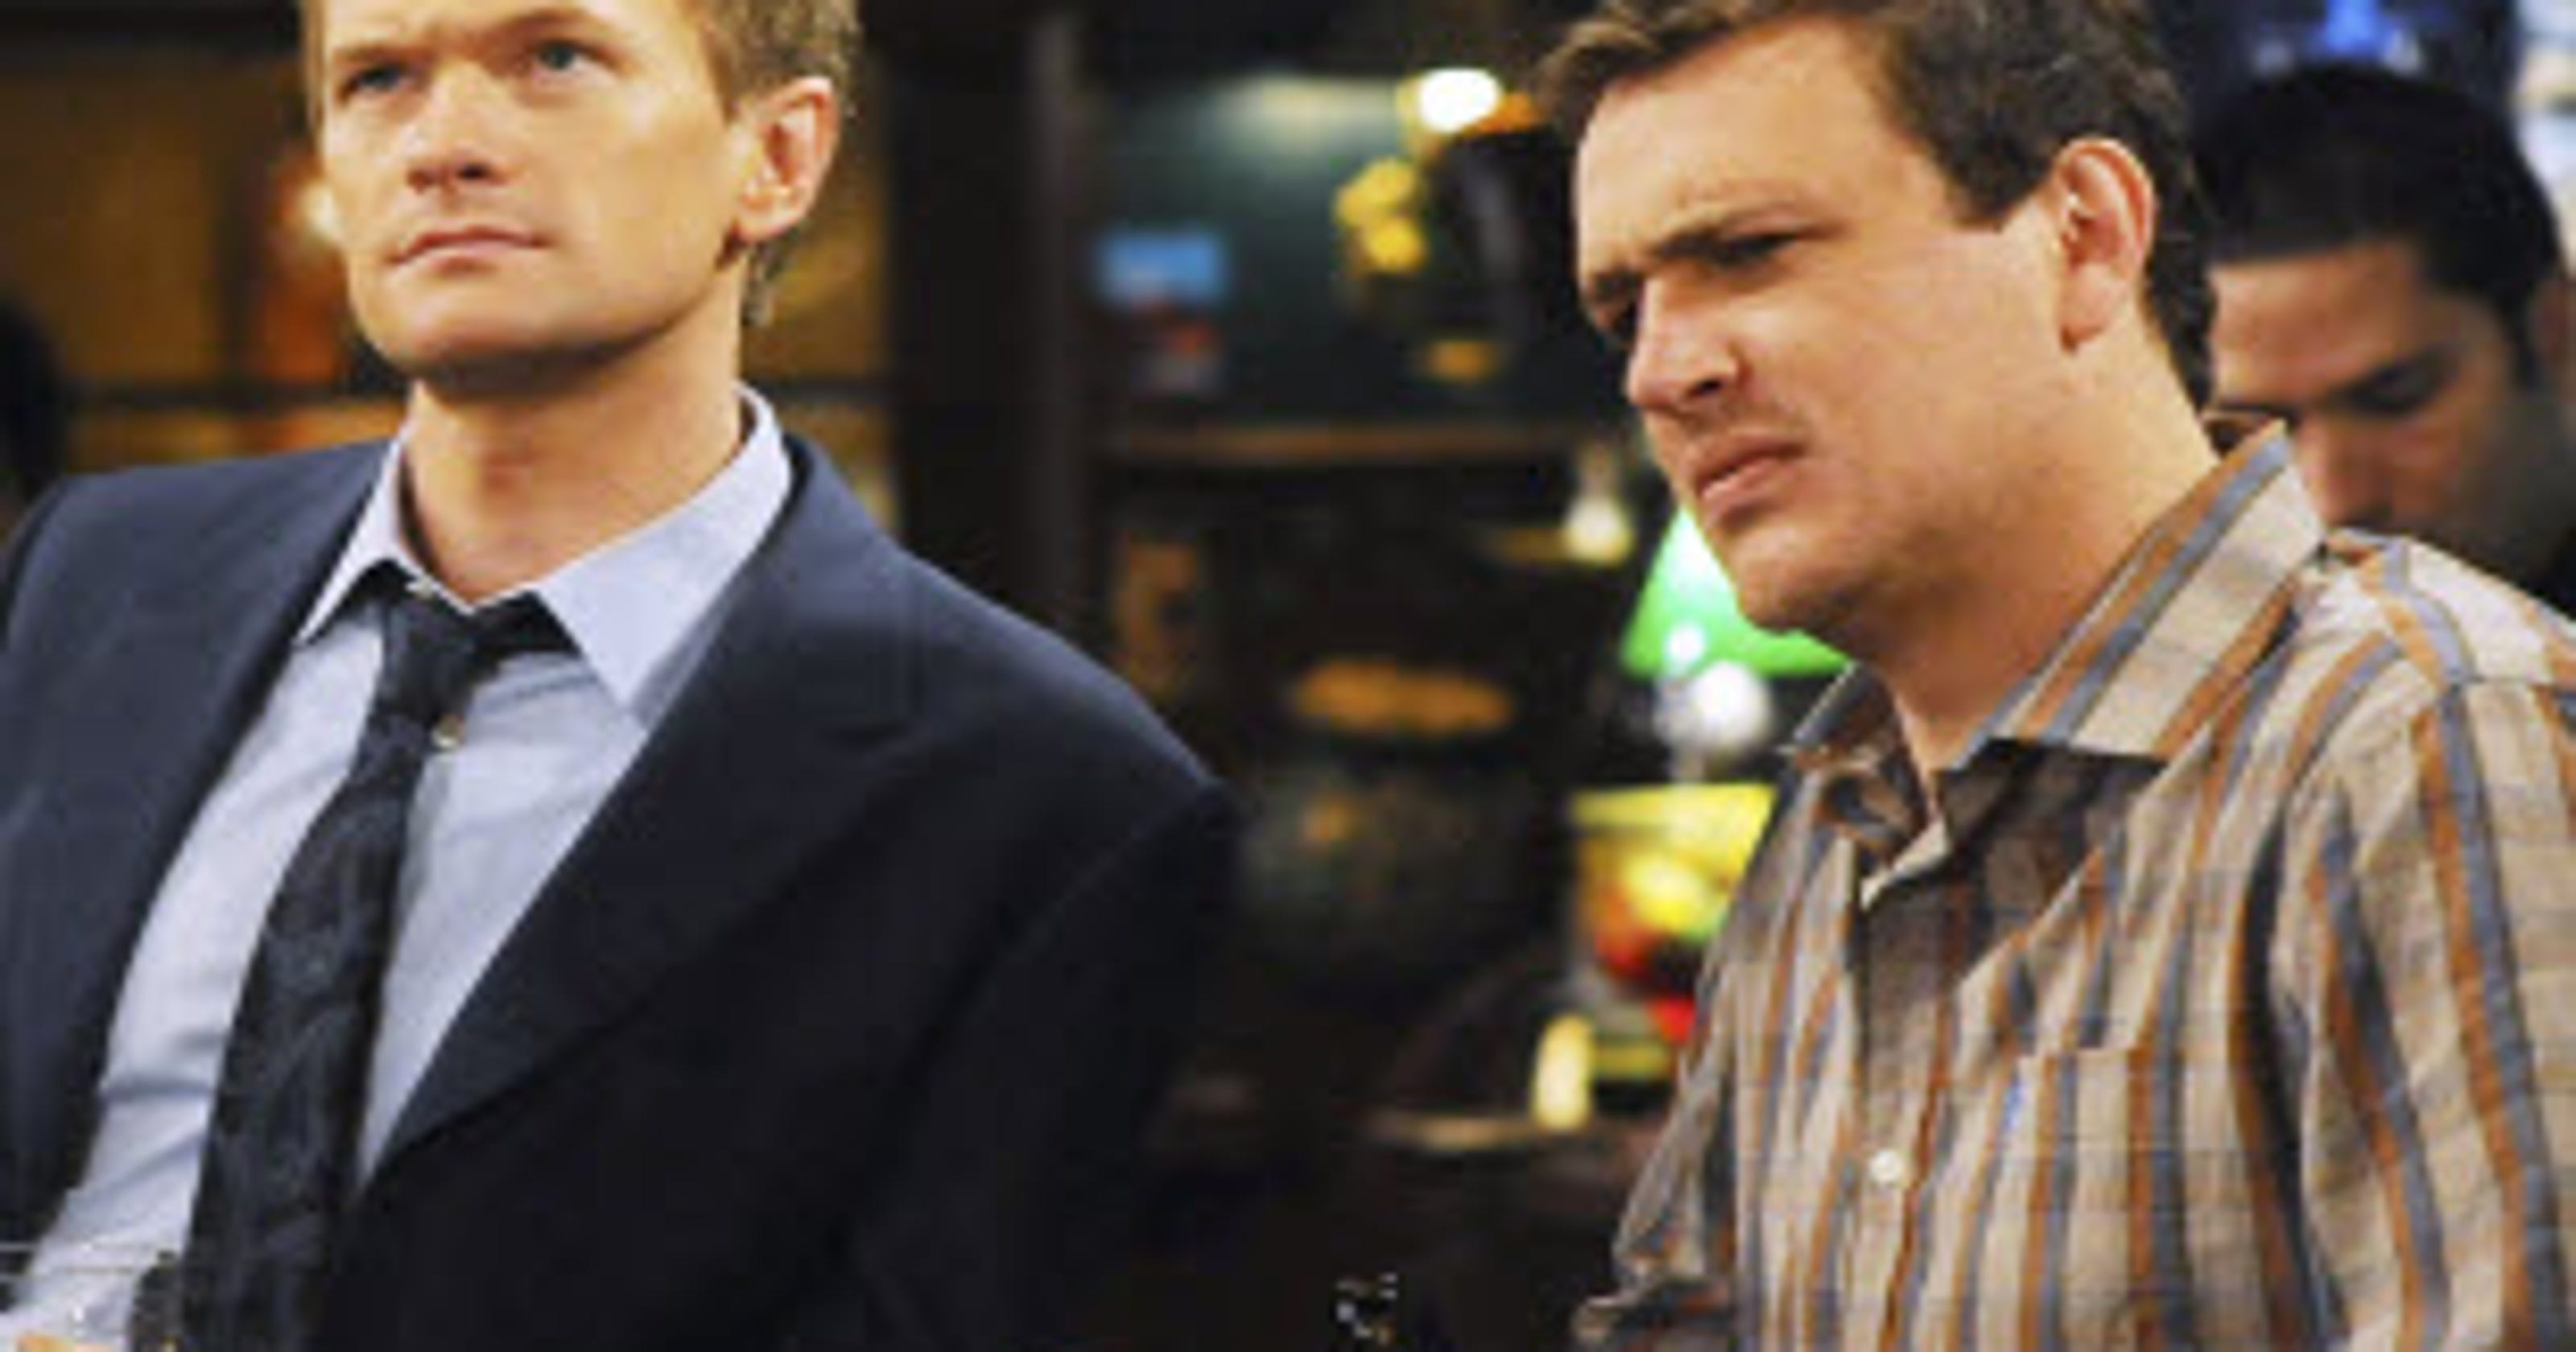 Career lessons from 'How I Met Your Mother'